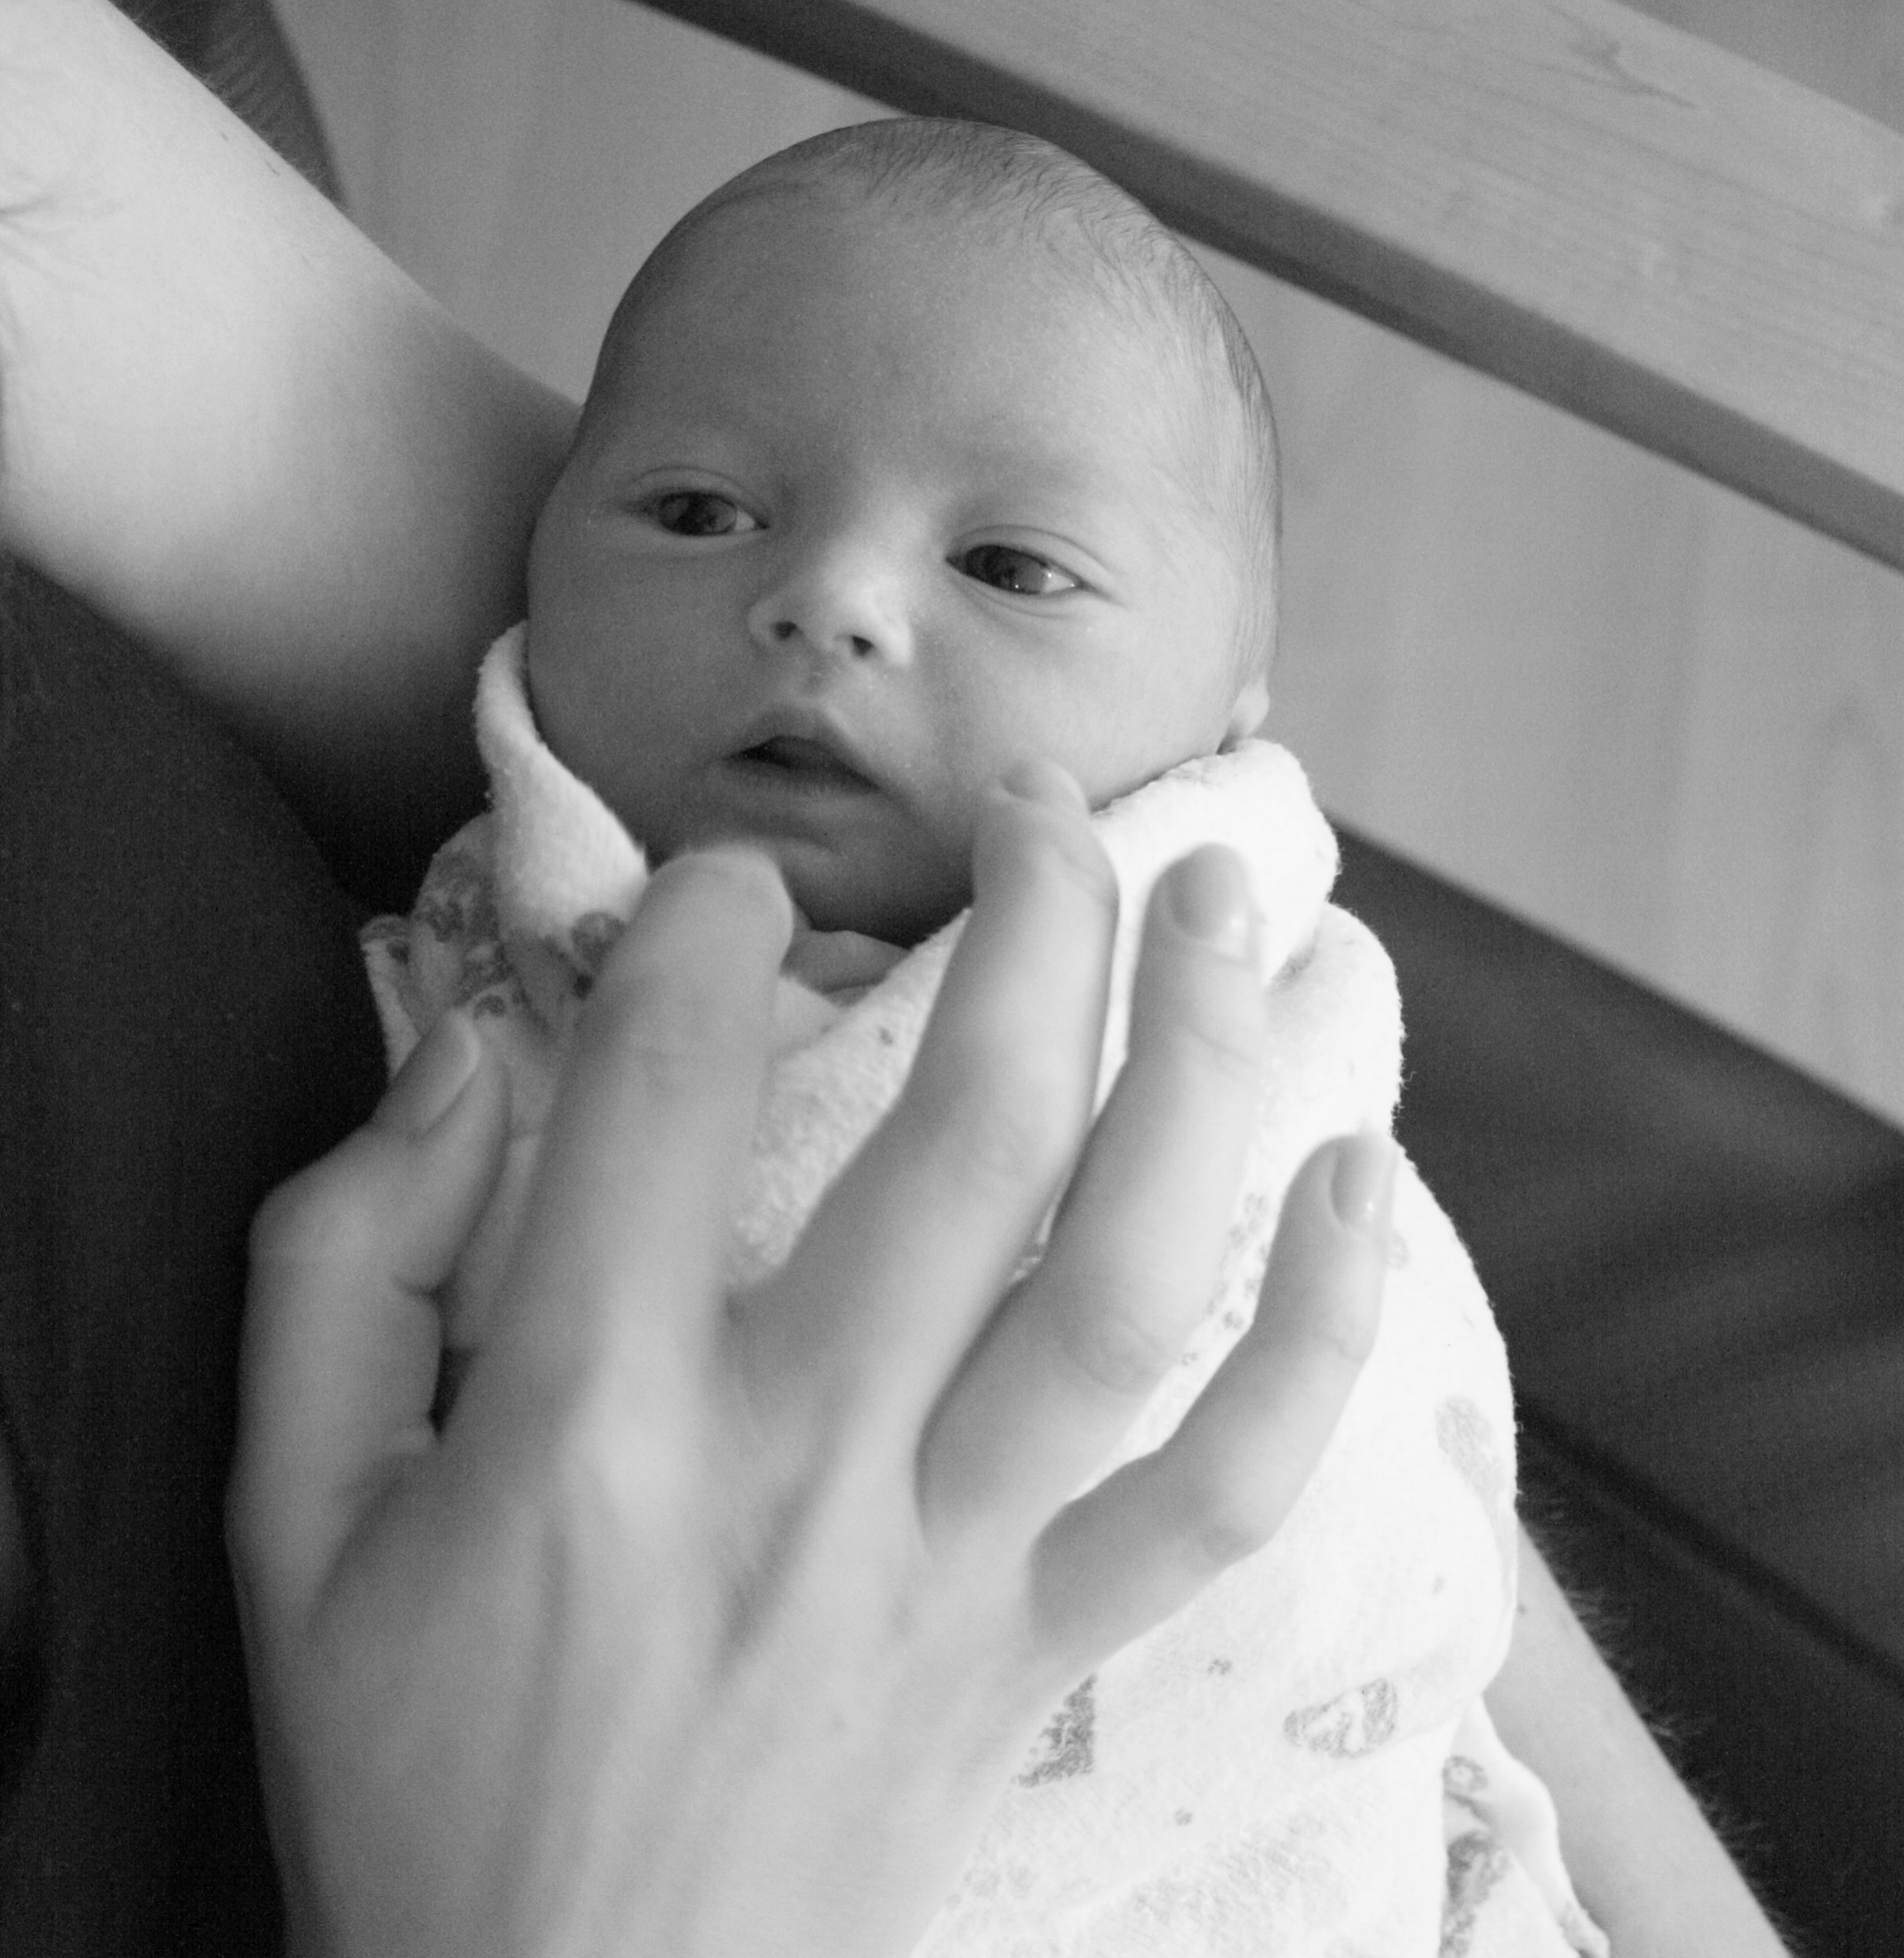 Sweet baby Jack, one day old.